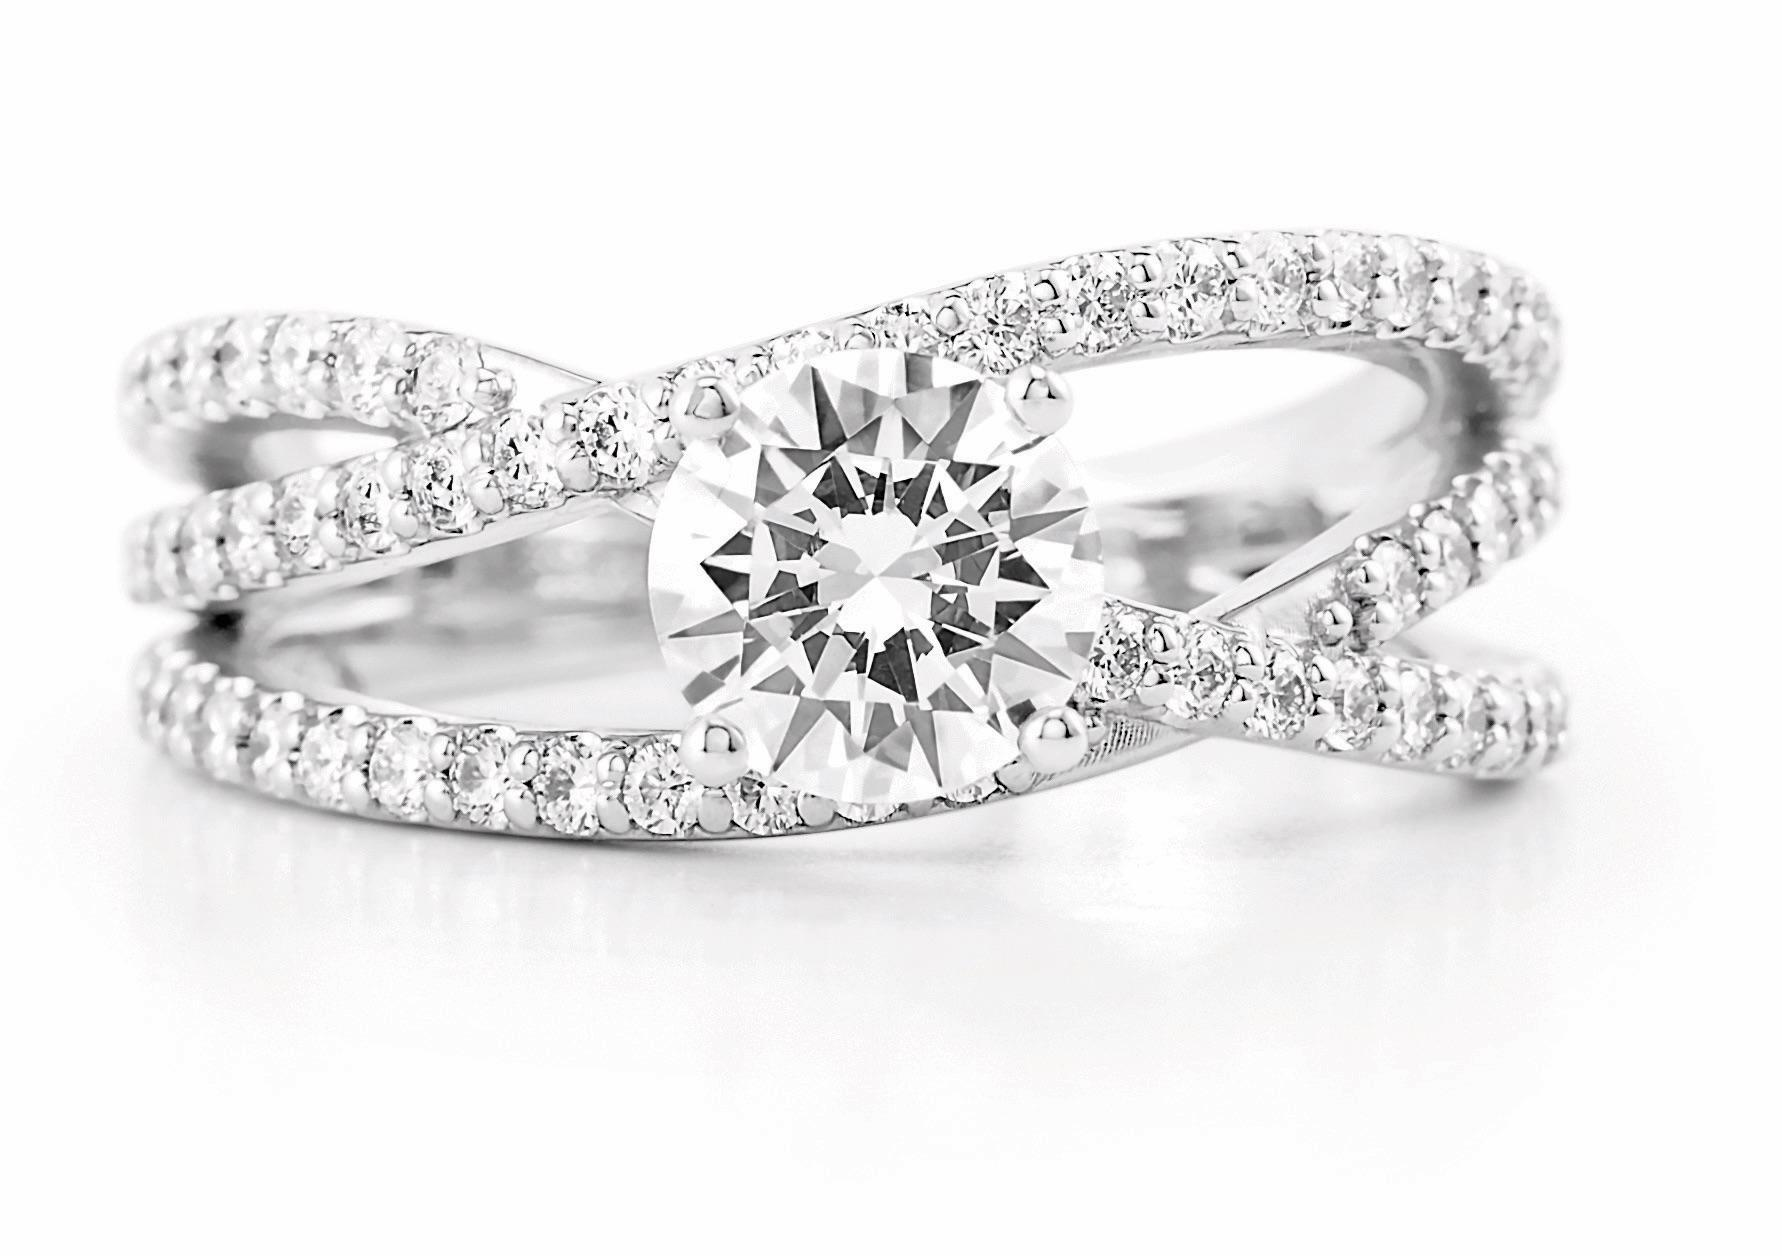 If you're considering popping the question this holiday season or just looking to buy a special piece of jewelry for someone special, don't go shopping before you read these tips from Ramón Garcia. Ramón is a second-generation jeweler, designer and diamond specialist, so his tips are worth their weight in gold (pun totally intended). (Image: Courtesy Silver Spring Jewelry)